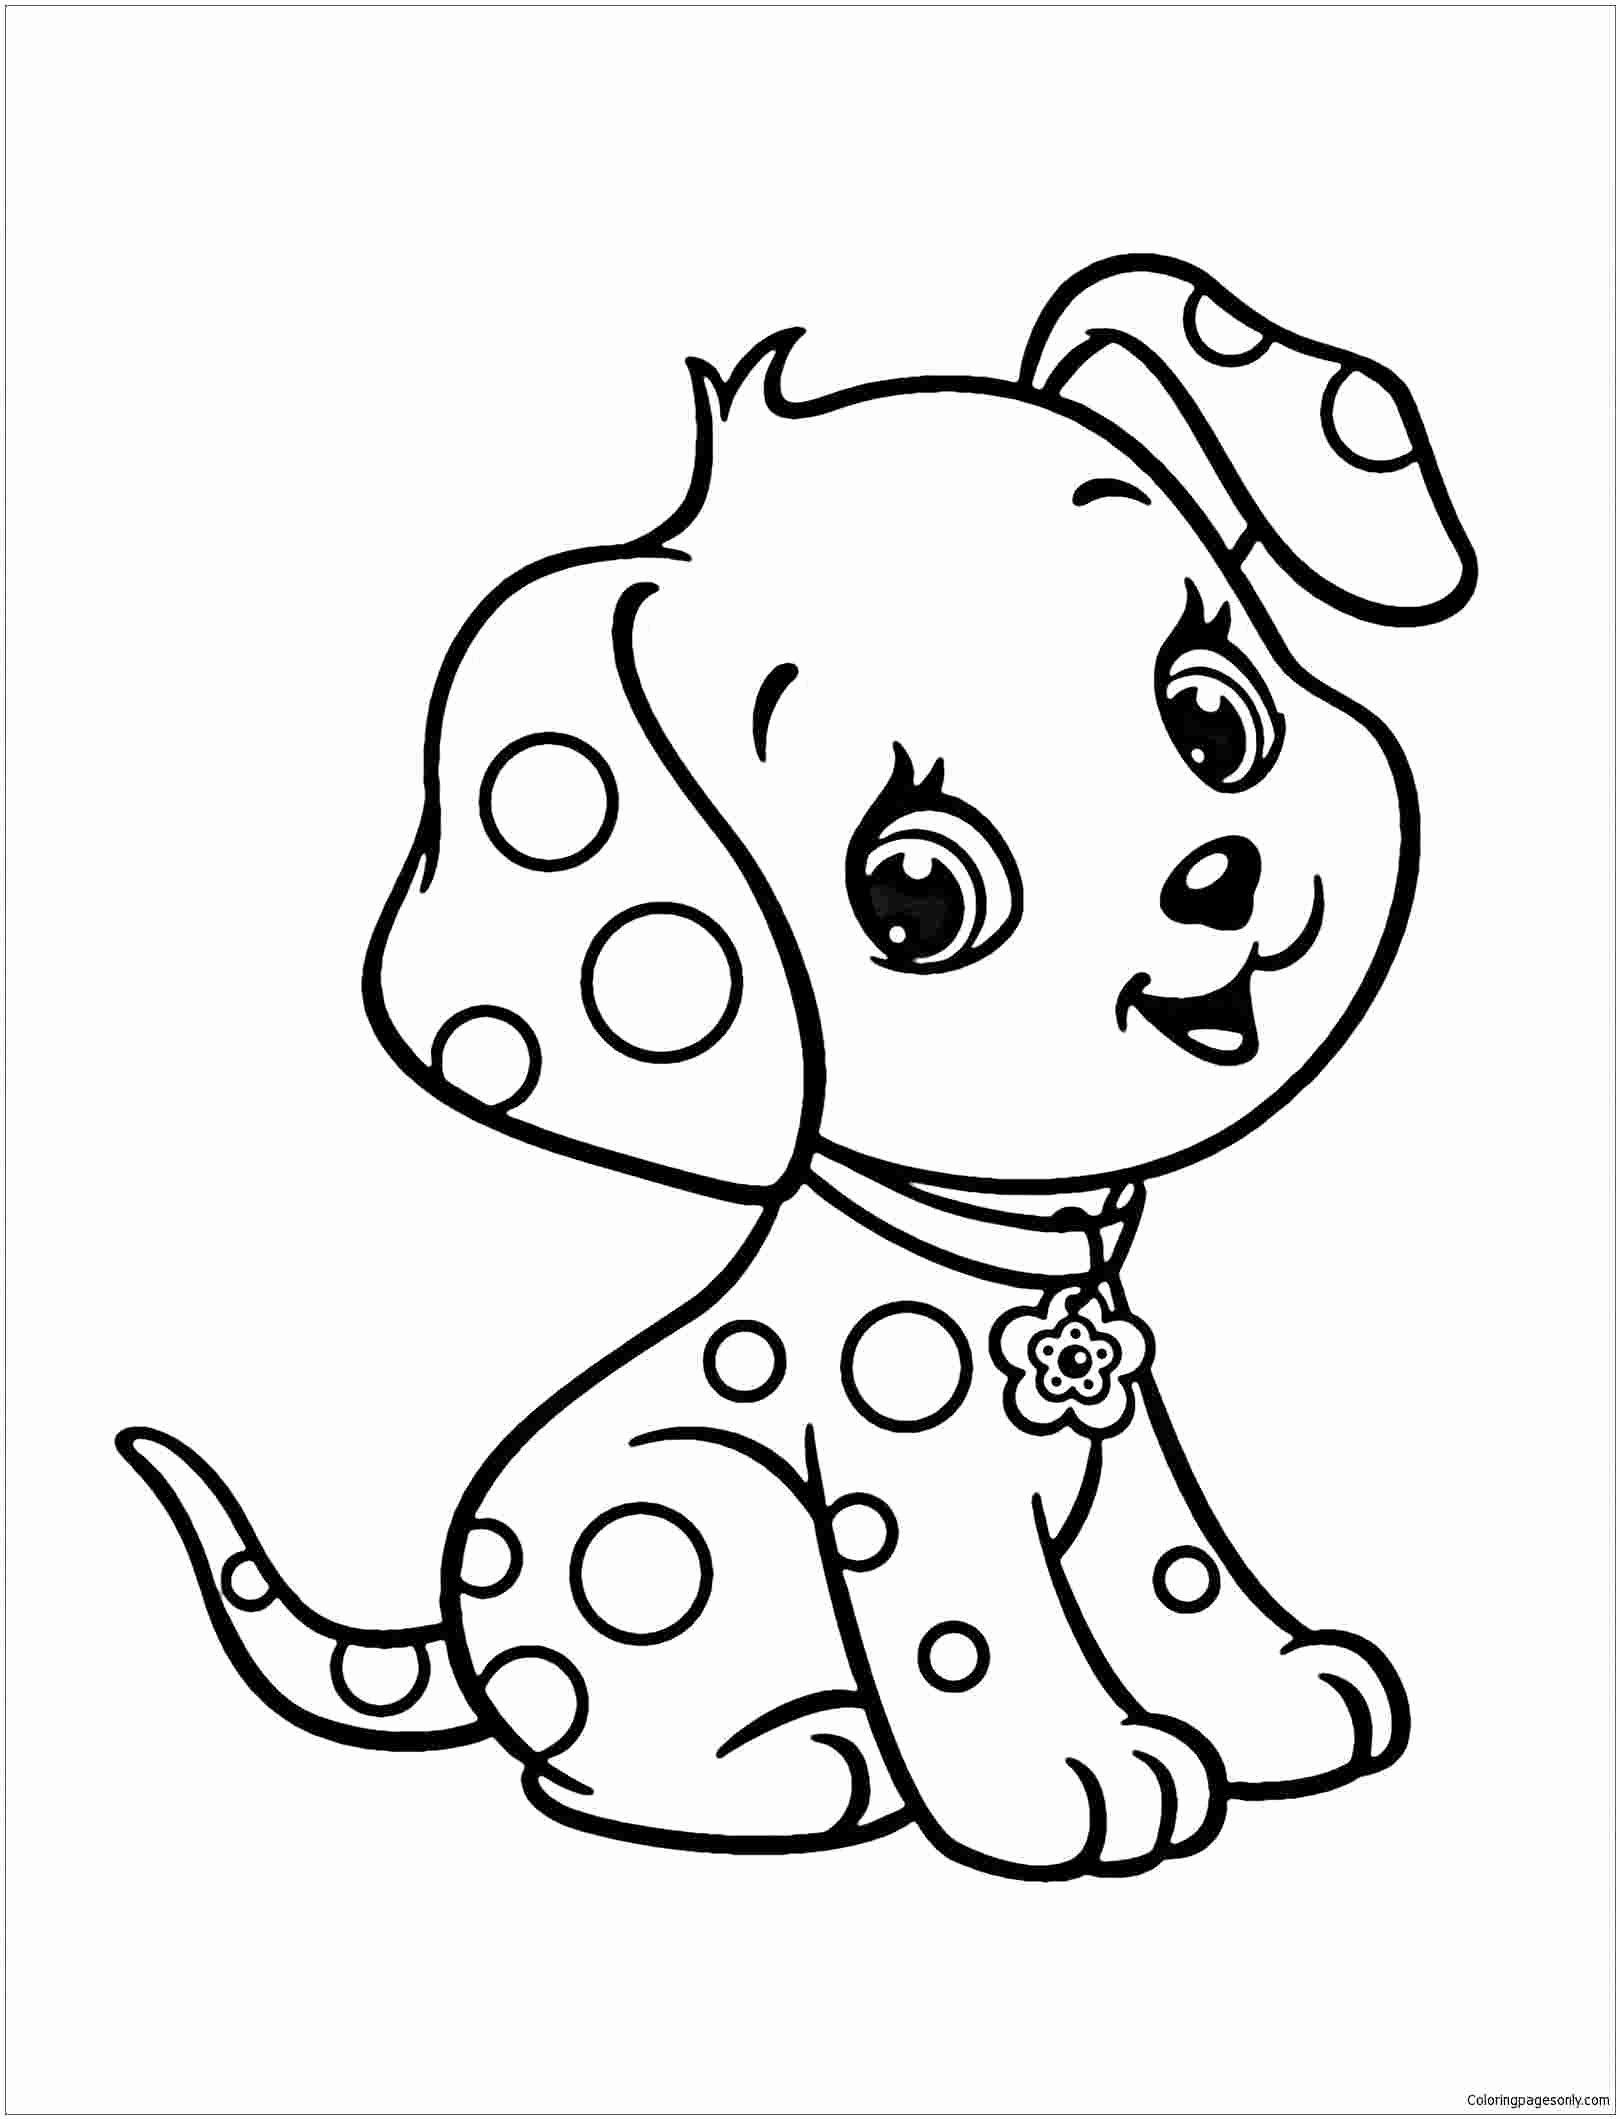 Animal Coloring Book For Kids Elegant Coloring Pages Easy Coloring Dogs Animal Colouring Free In 2020 Puppy Coloring Pages Dog Coloring Page Cute Coloring Pages